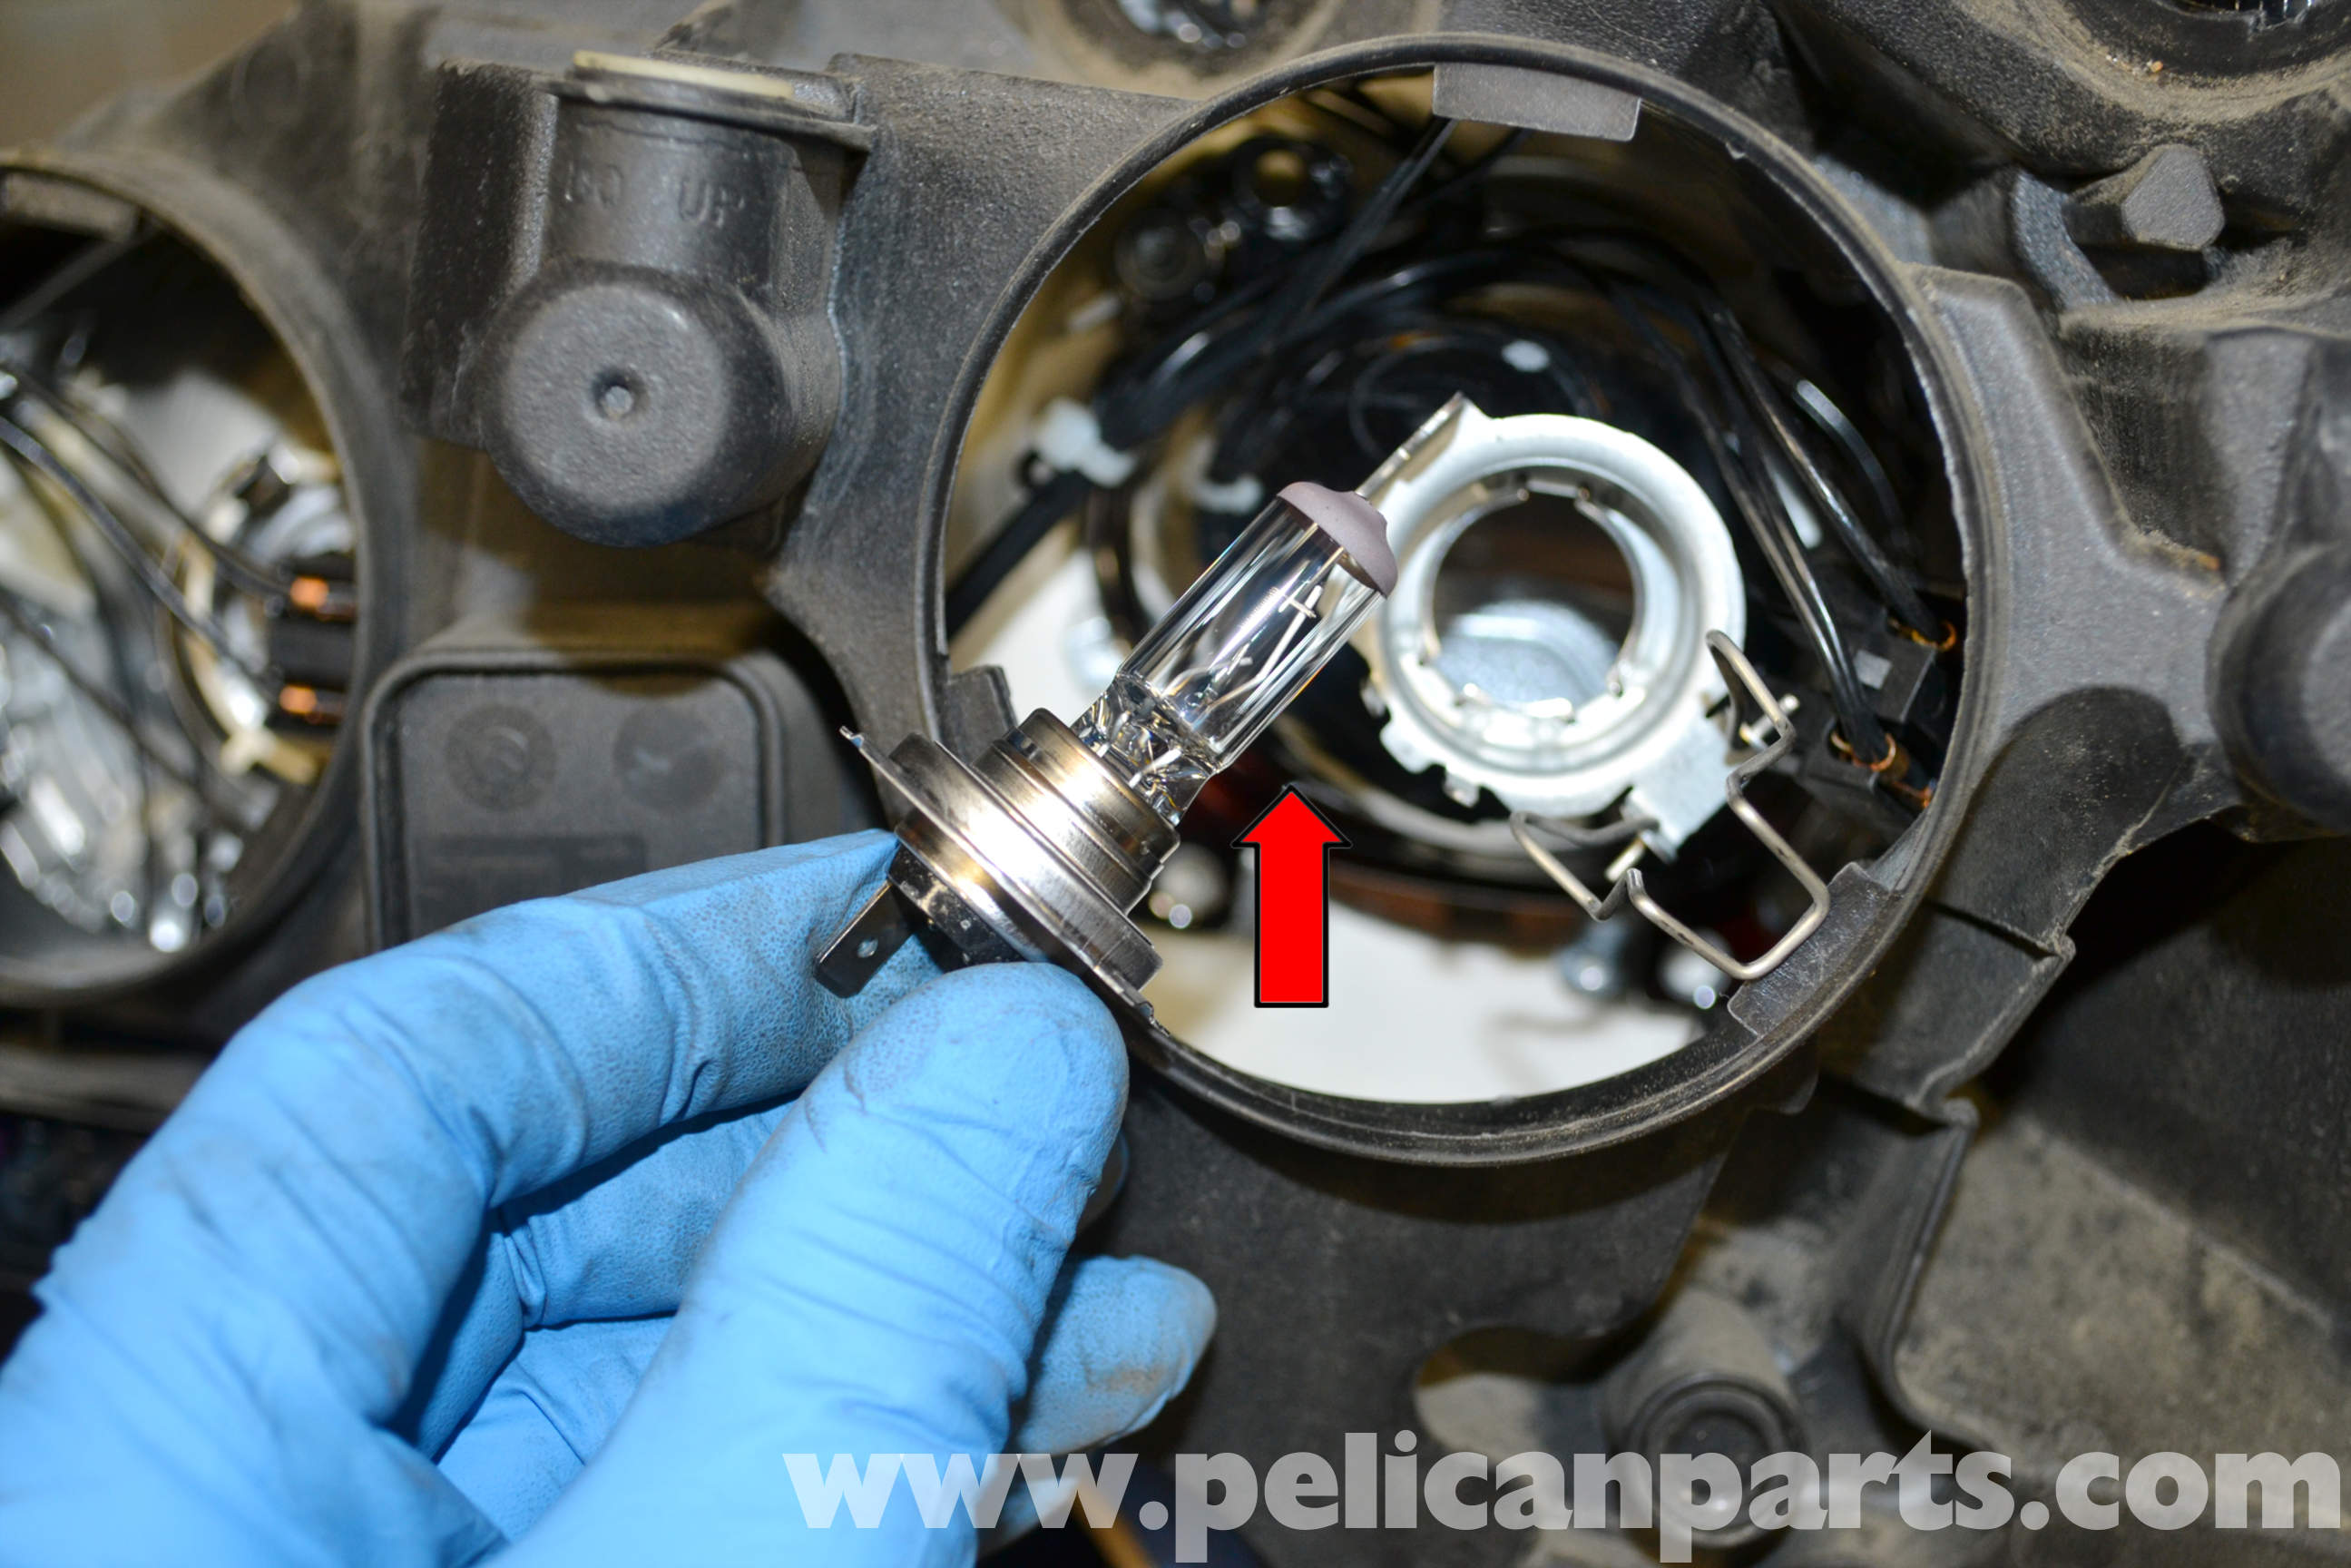 Mercedes Benz W204 Headlight Bulb And Assembly Replacement